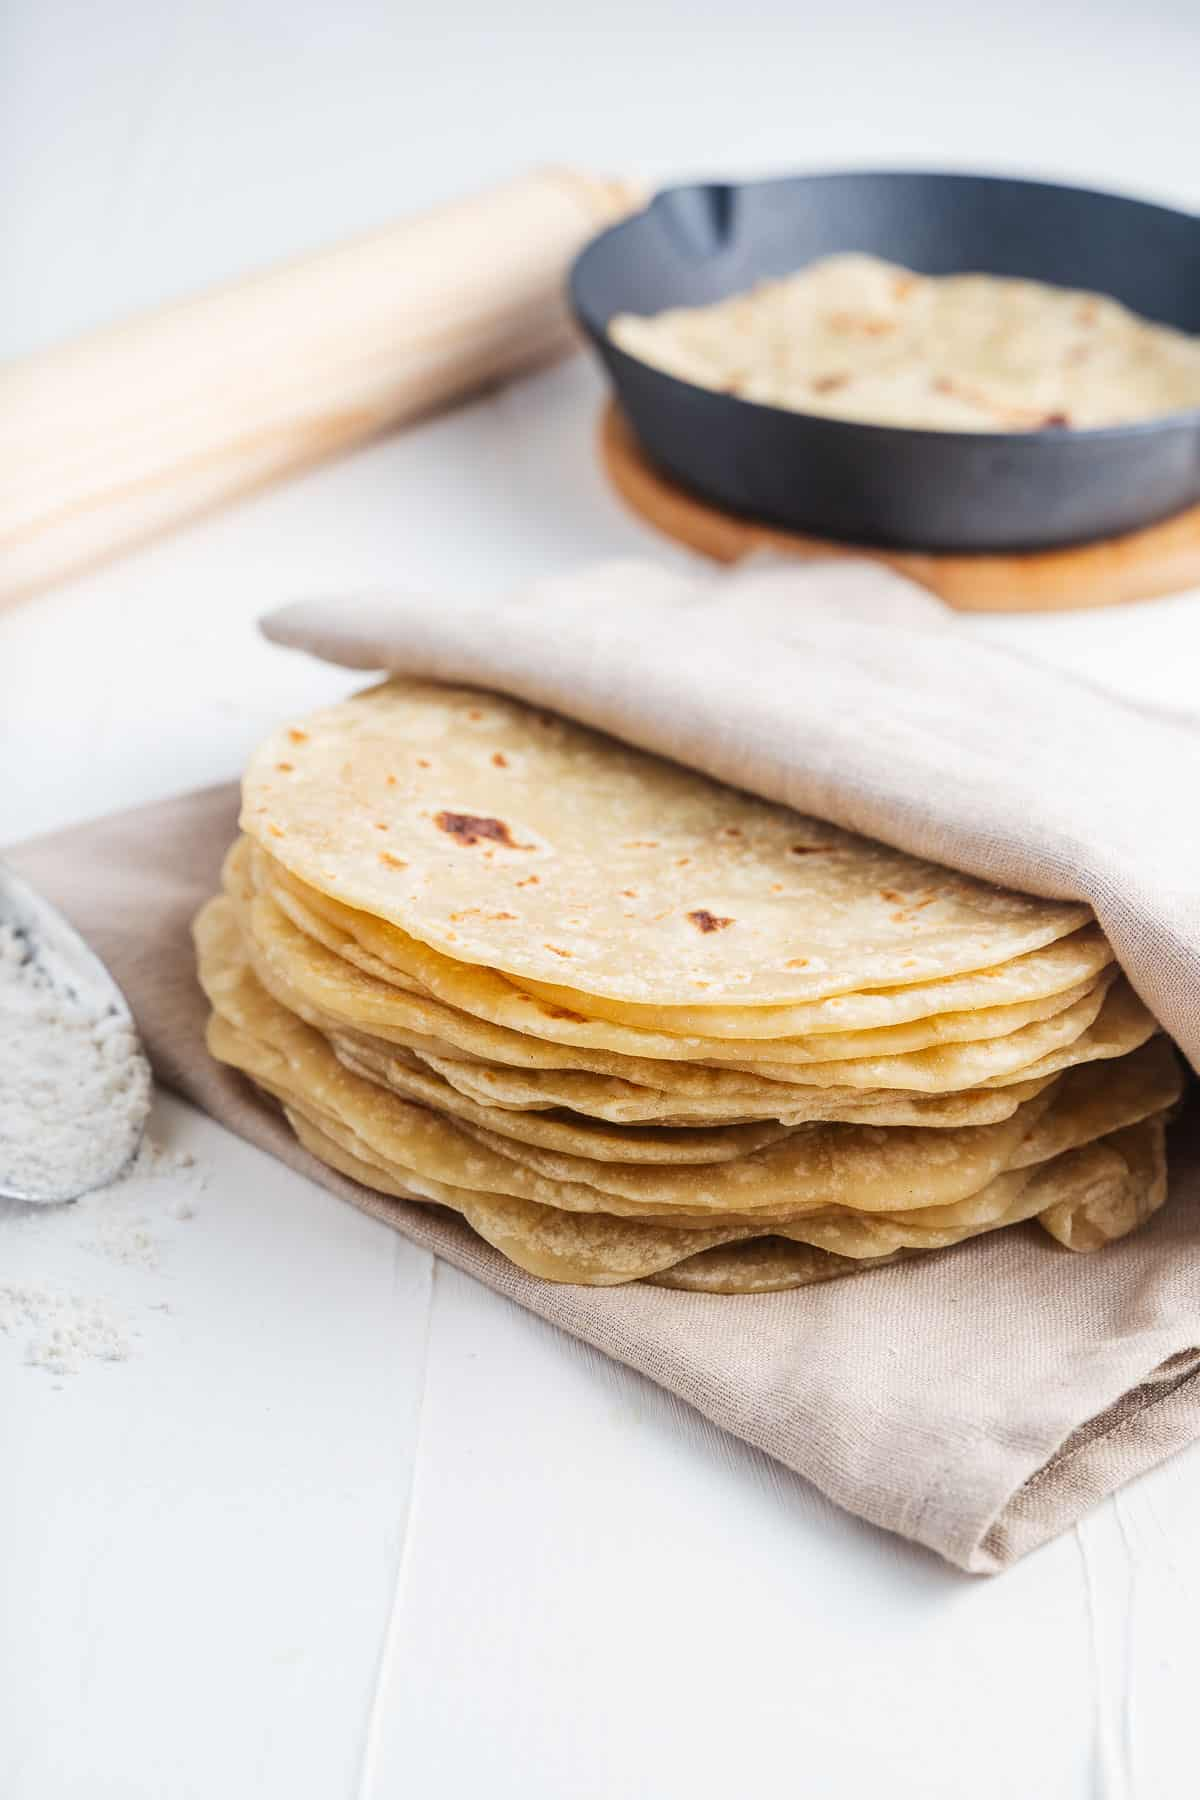 How To Make Flour Tortillas From Scratch Without Lard